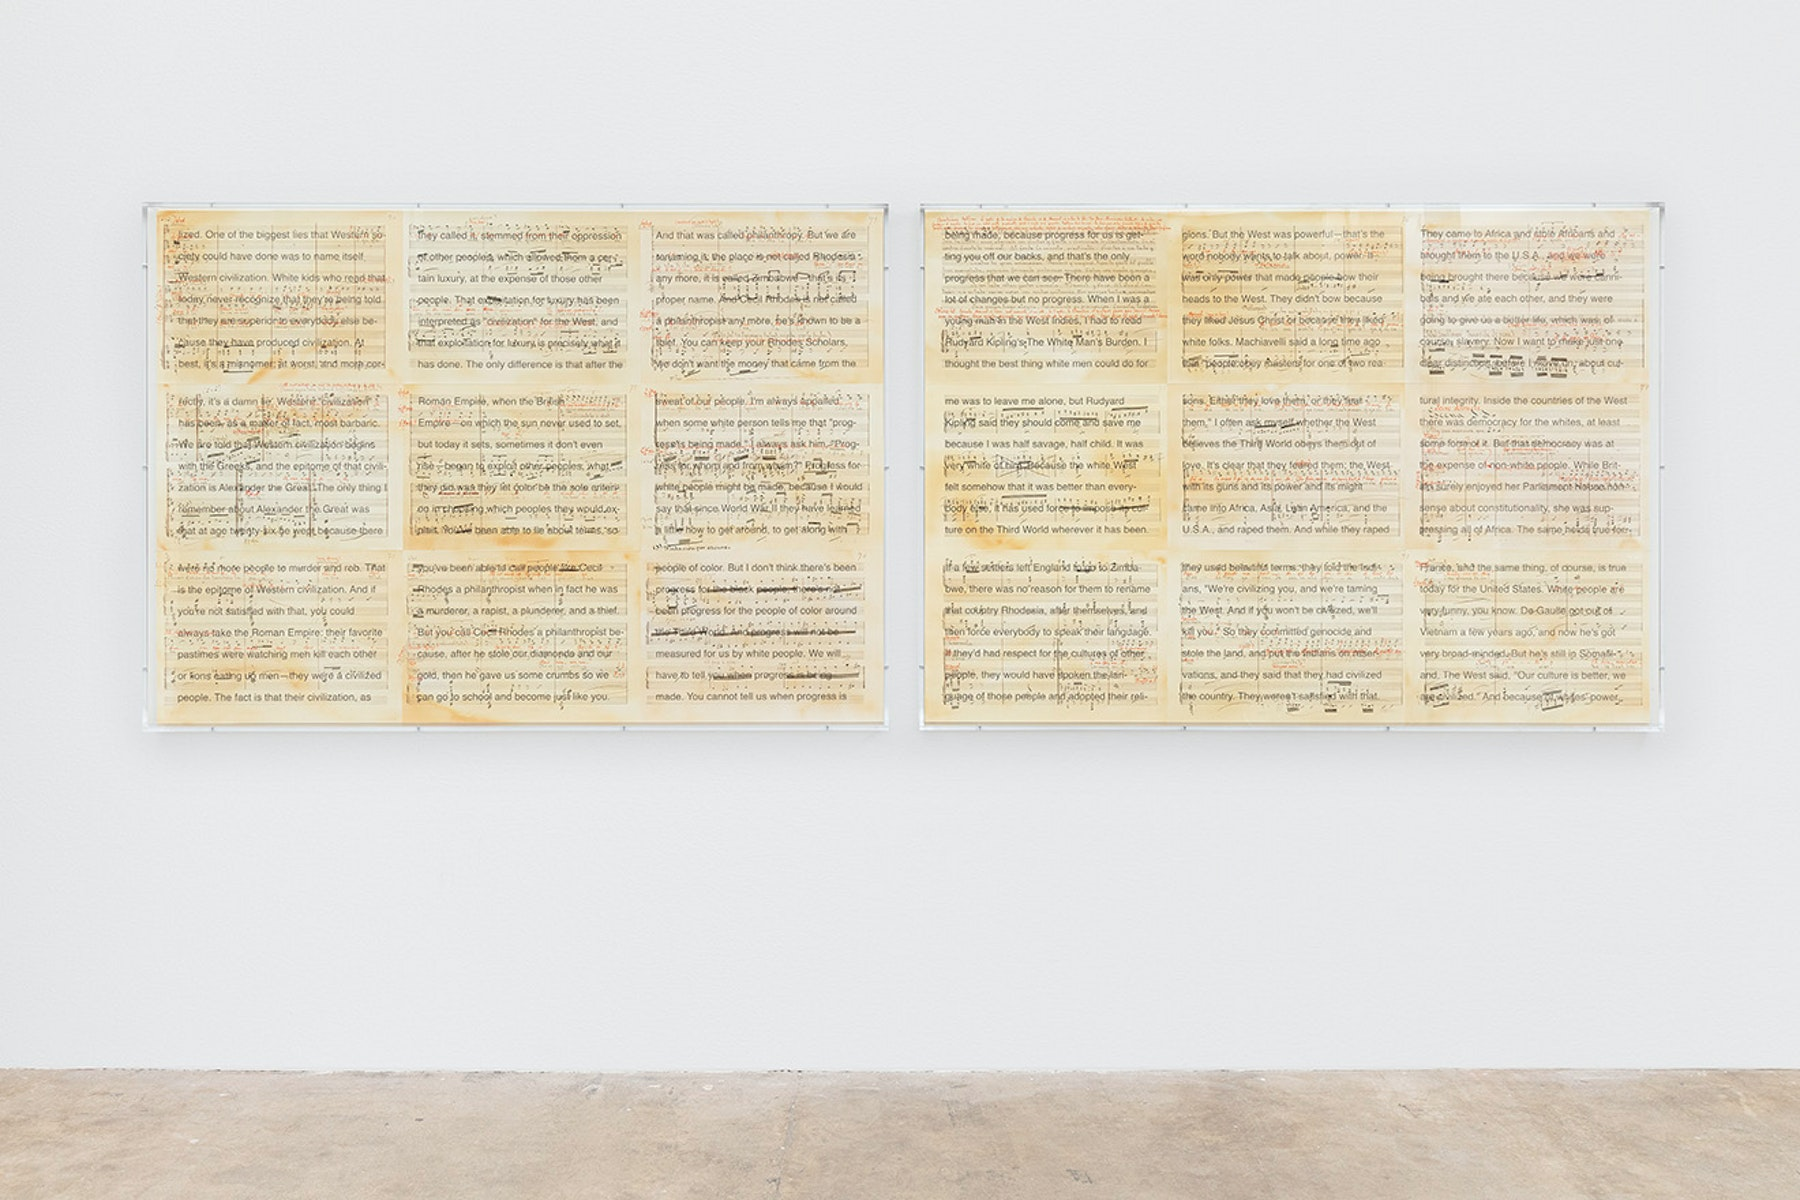 """Charles Gaines """"Librettos: Manuel de Falla/Stokely Carmichael, Set 23,"""" 2020 Printed ink, stained paper, UV print on acrylic, 2 parts 51 ¹⁄₂"""" x 72 ¹⁄₂"""" x 3"""" [HxWxD] (130.81 x 184.15 x 7.62 cm) each, 51 ¹⁄₂"""" x 12' 4"""" x 3"""" [HxWxD] (130.81 x 375.92 x 7.62 cm) overall Inventory #GAI469 Photo: Evan Bedford Courtesy of the artist and Hauser & Wirth"""